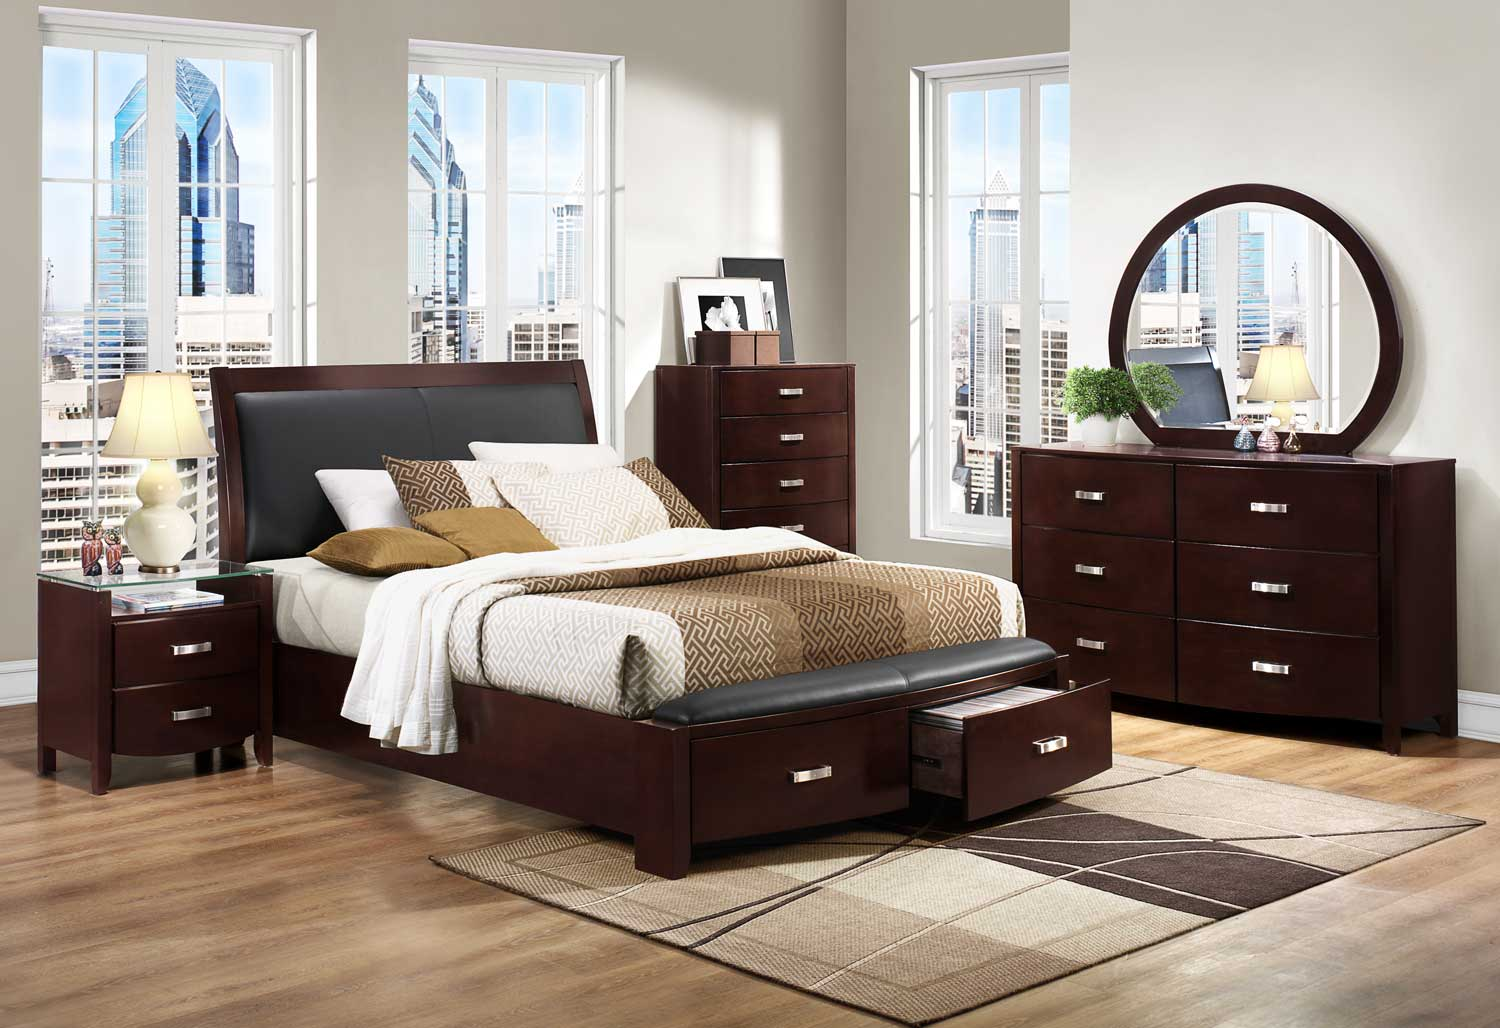 Homelegance lyric platform bedroom set dark espresso for Queen bed frame and dresser set